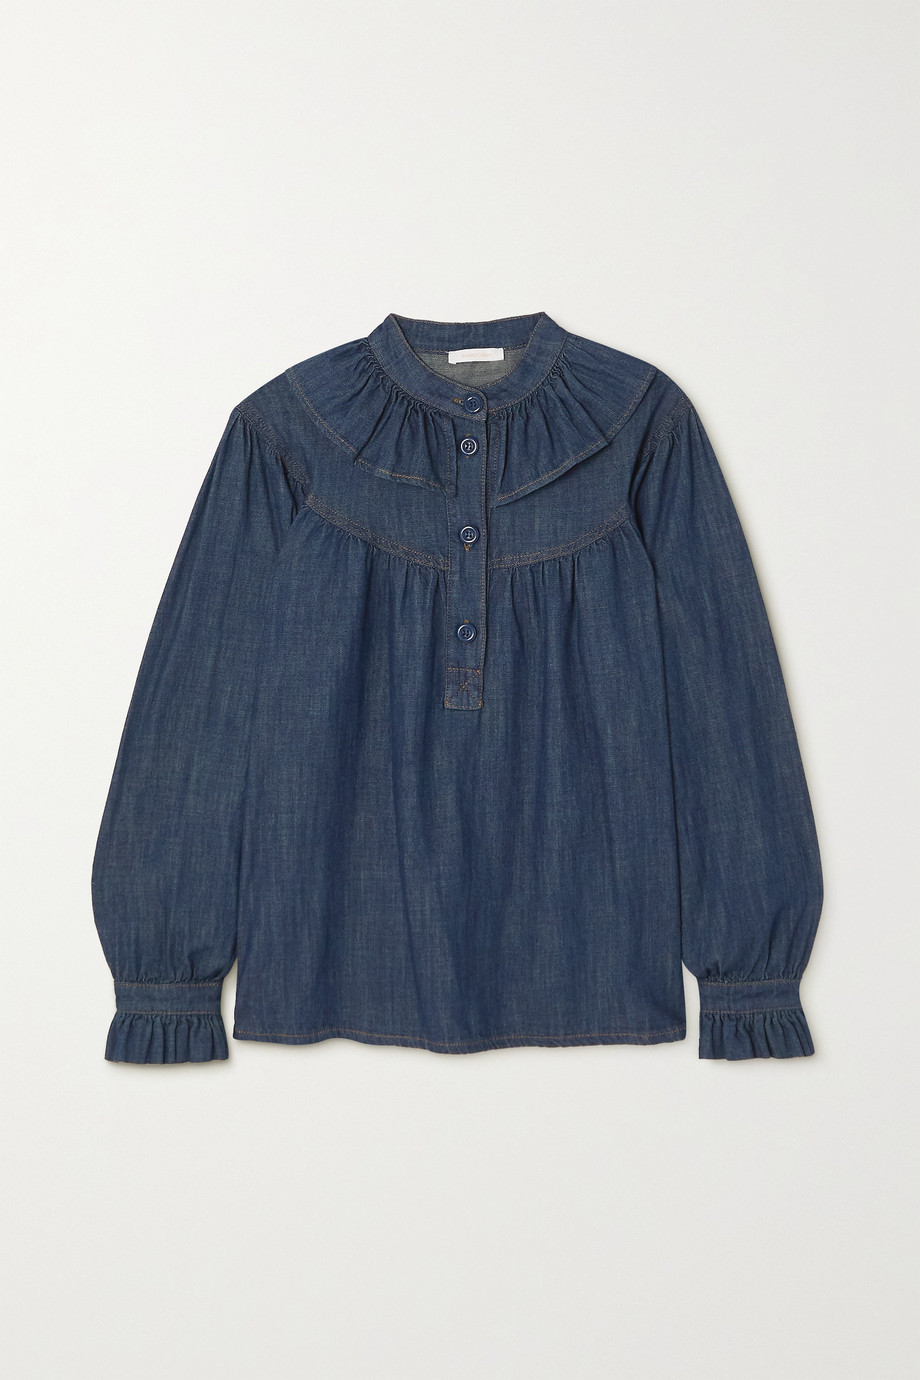 SEE BY CHLOÉ Ruffled denim blouse